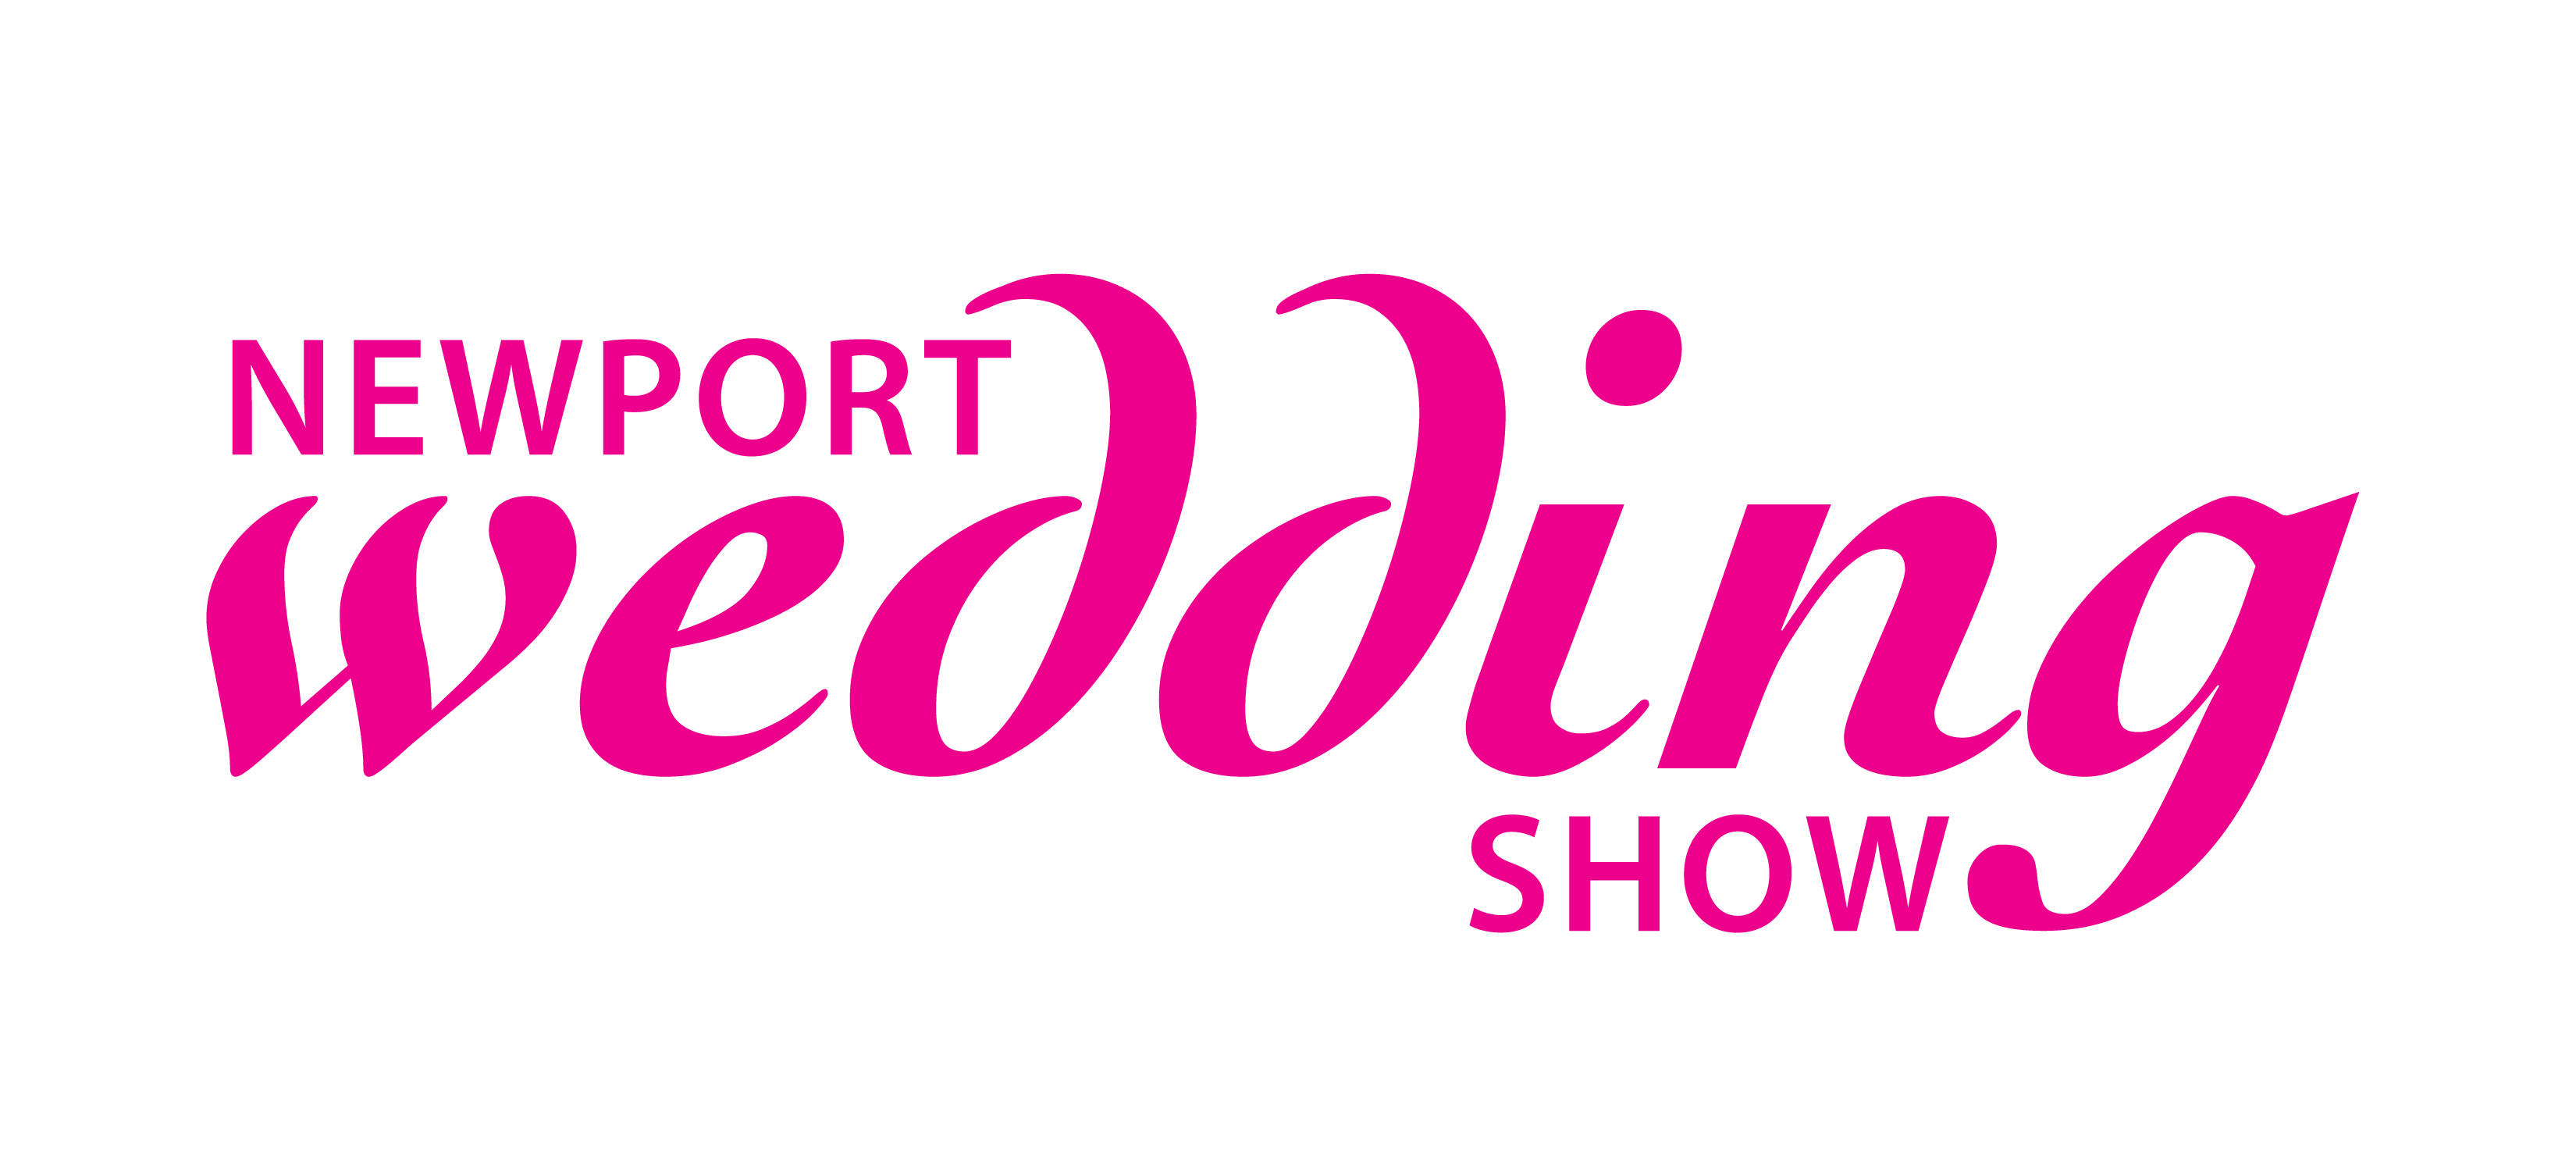 Newport Wedding Show